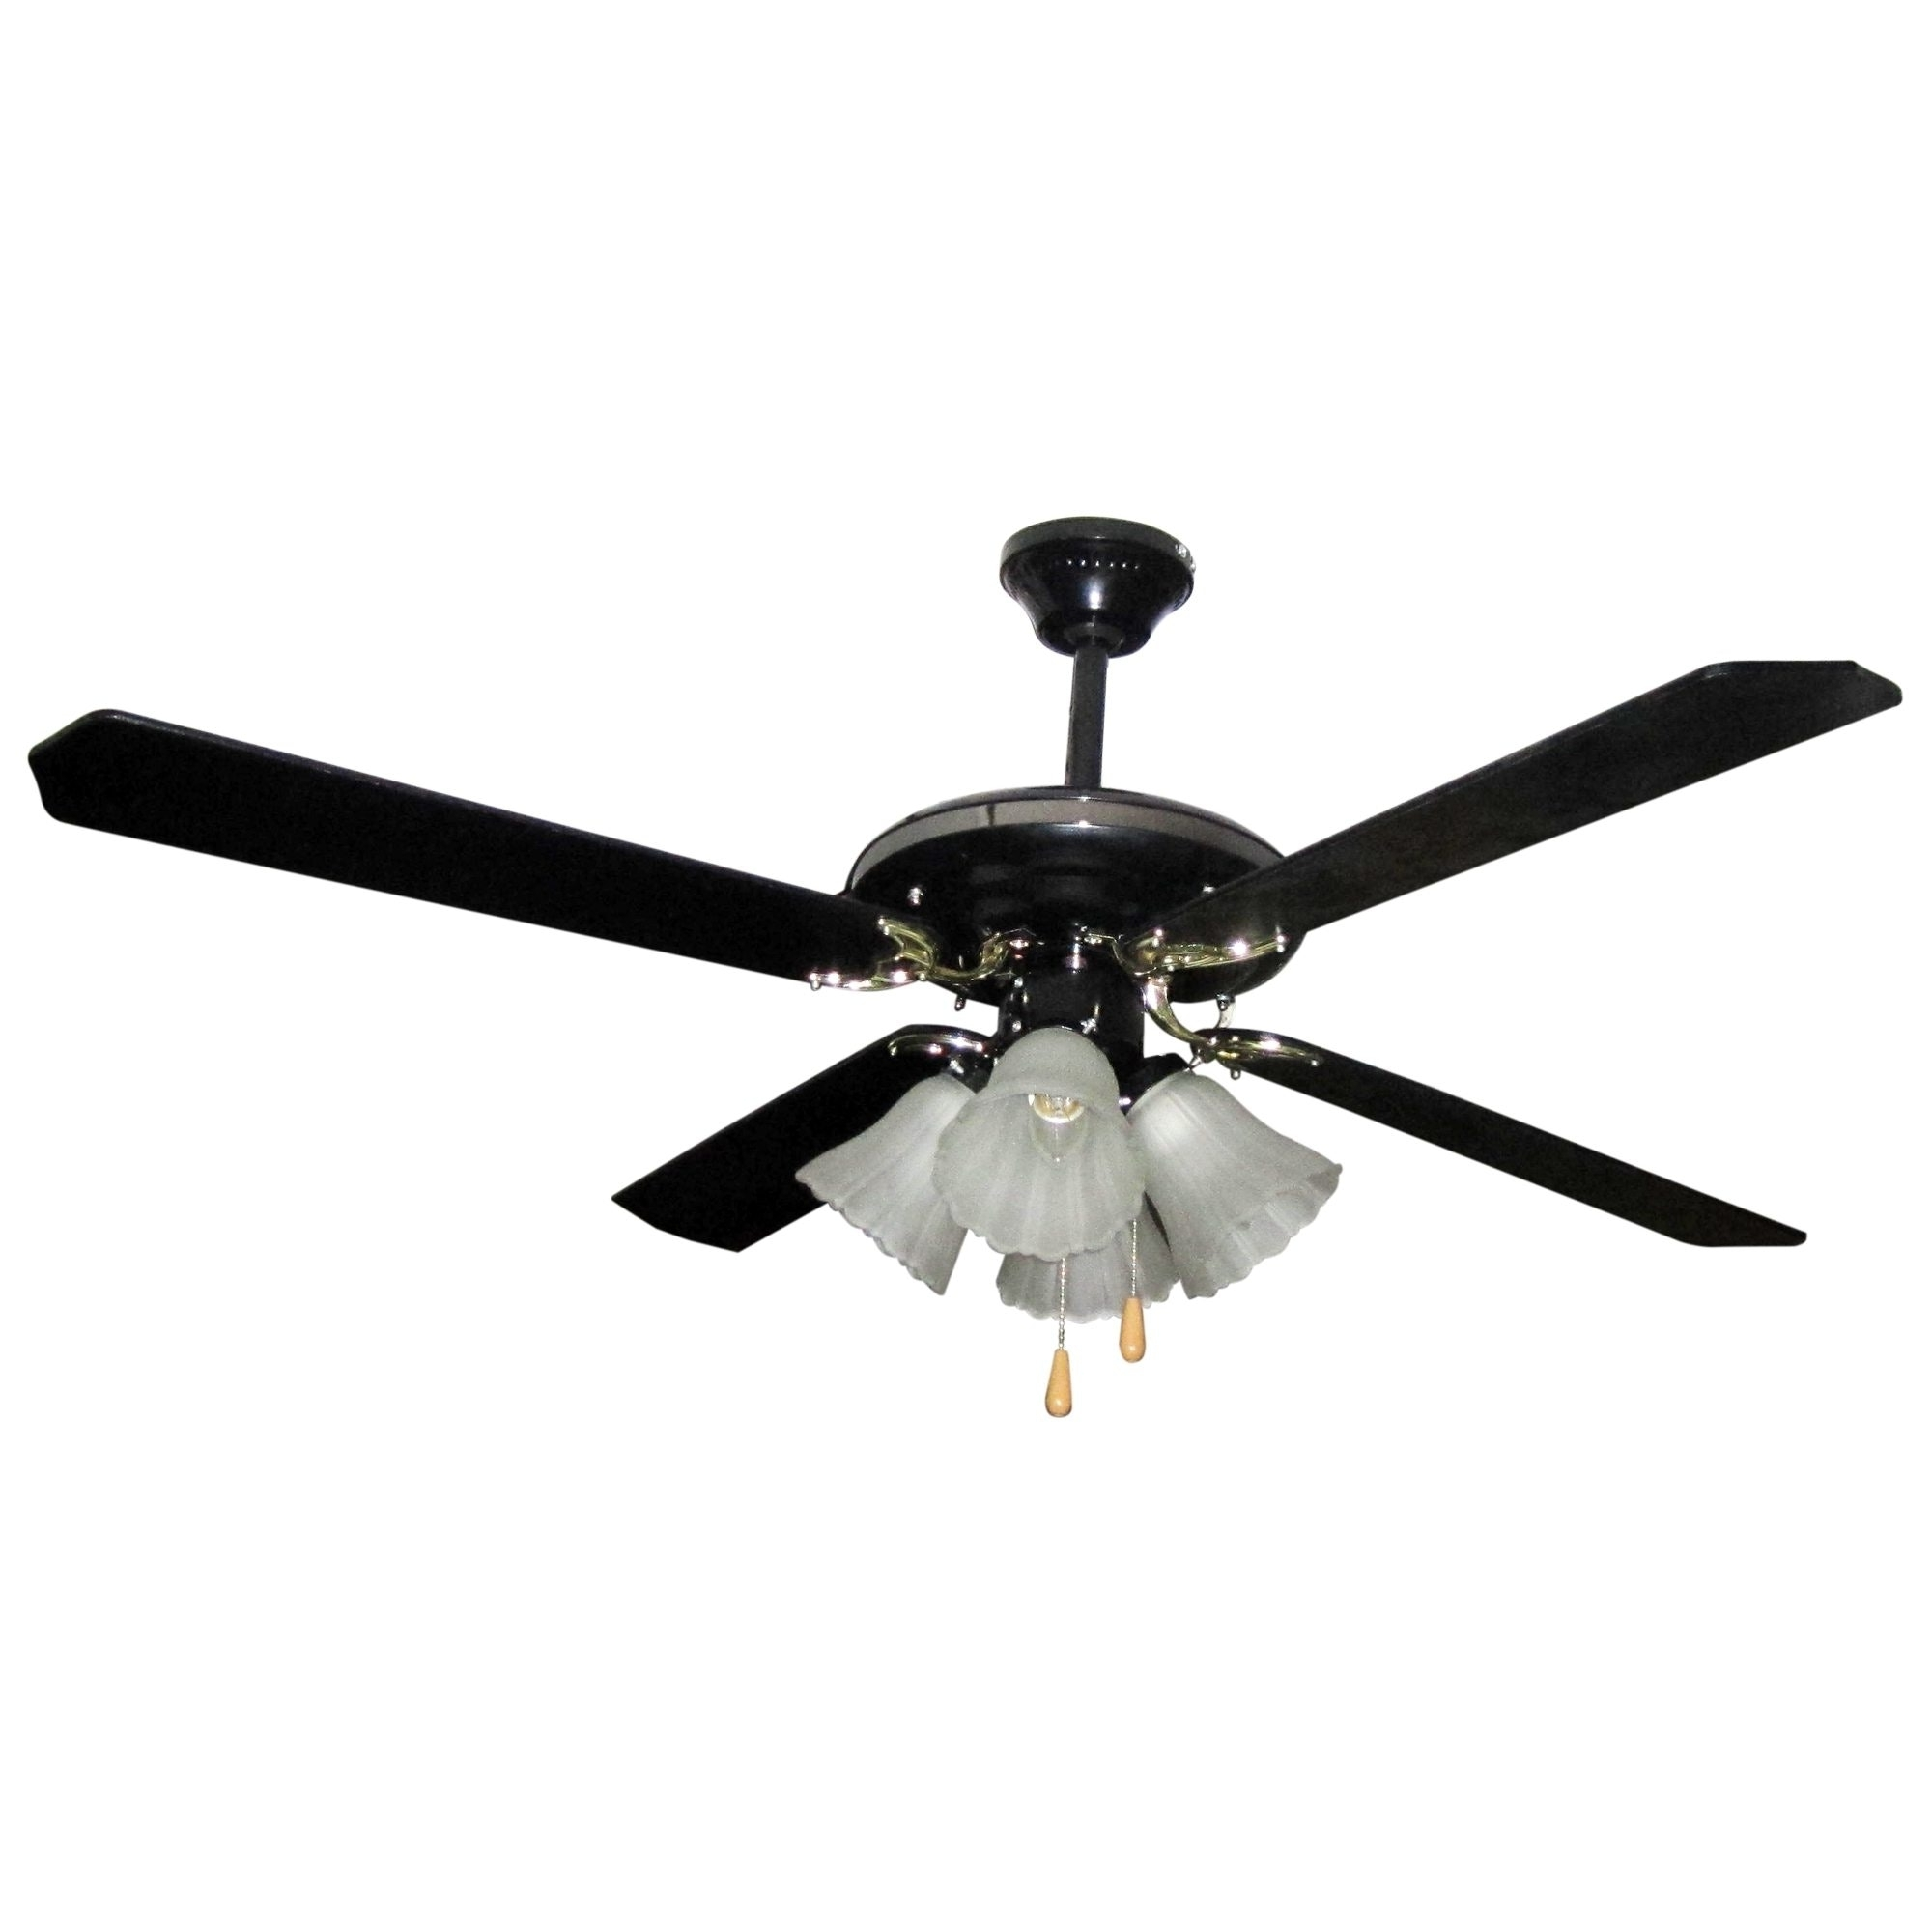 Most Recent Ceiling Fan: Menards Outdoor Ceiling Fans (View 3 of 20)